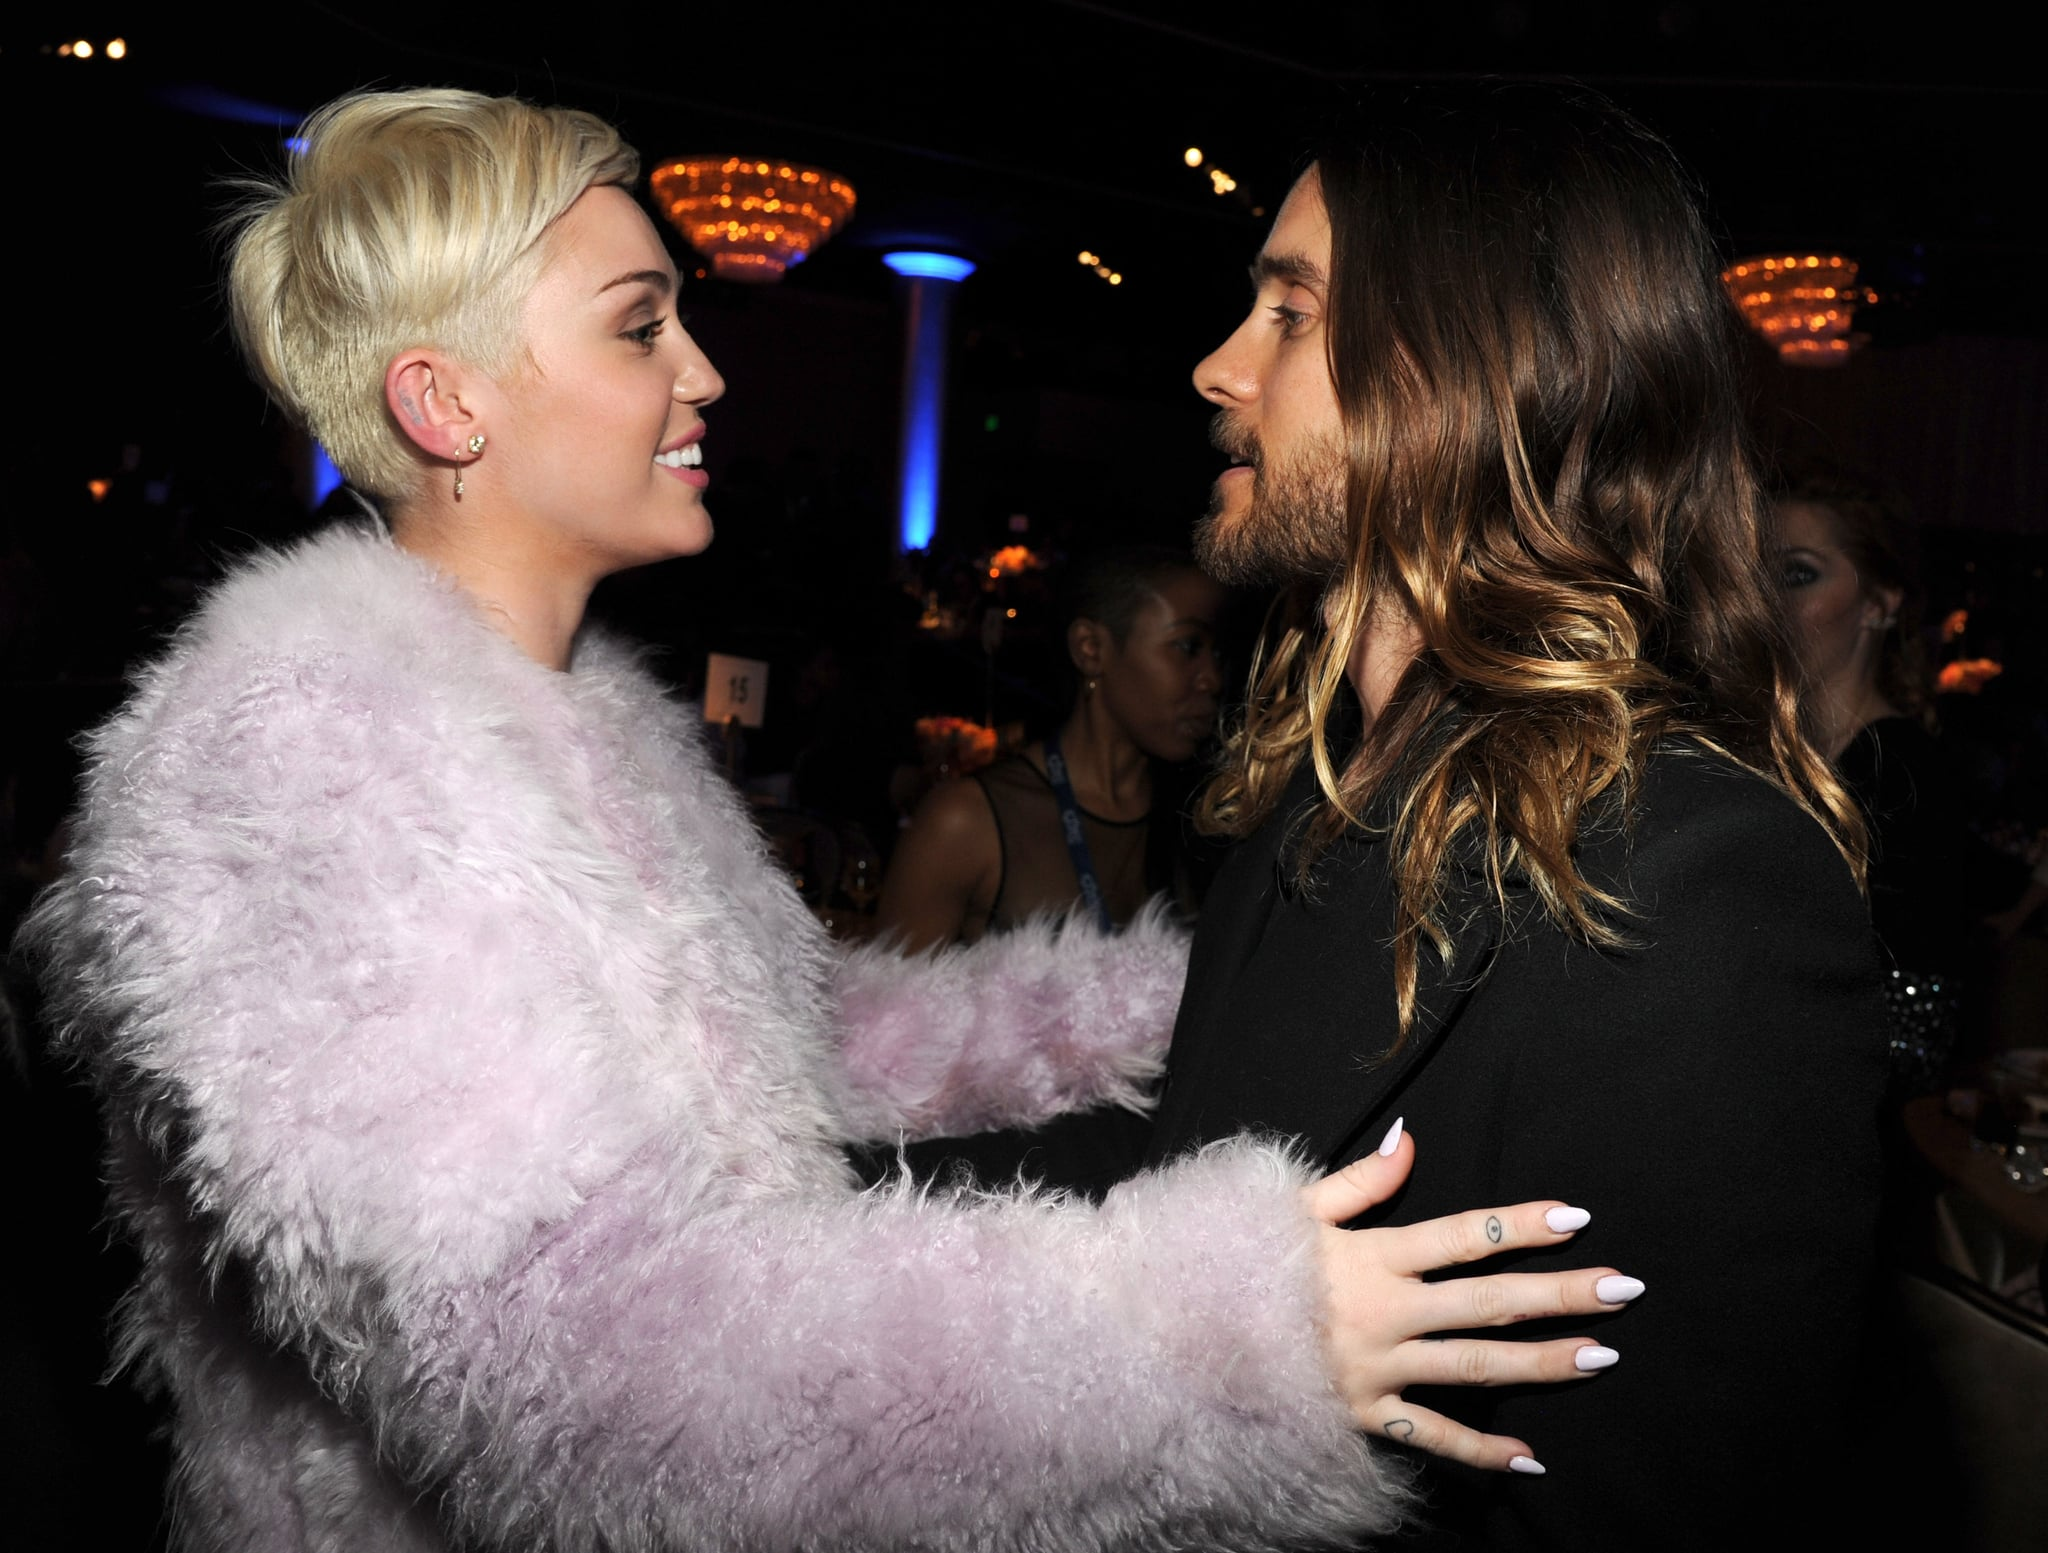 Miley Cyrus beamed while chatting with Jared Leto.